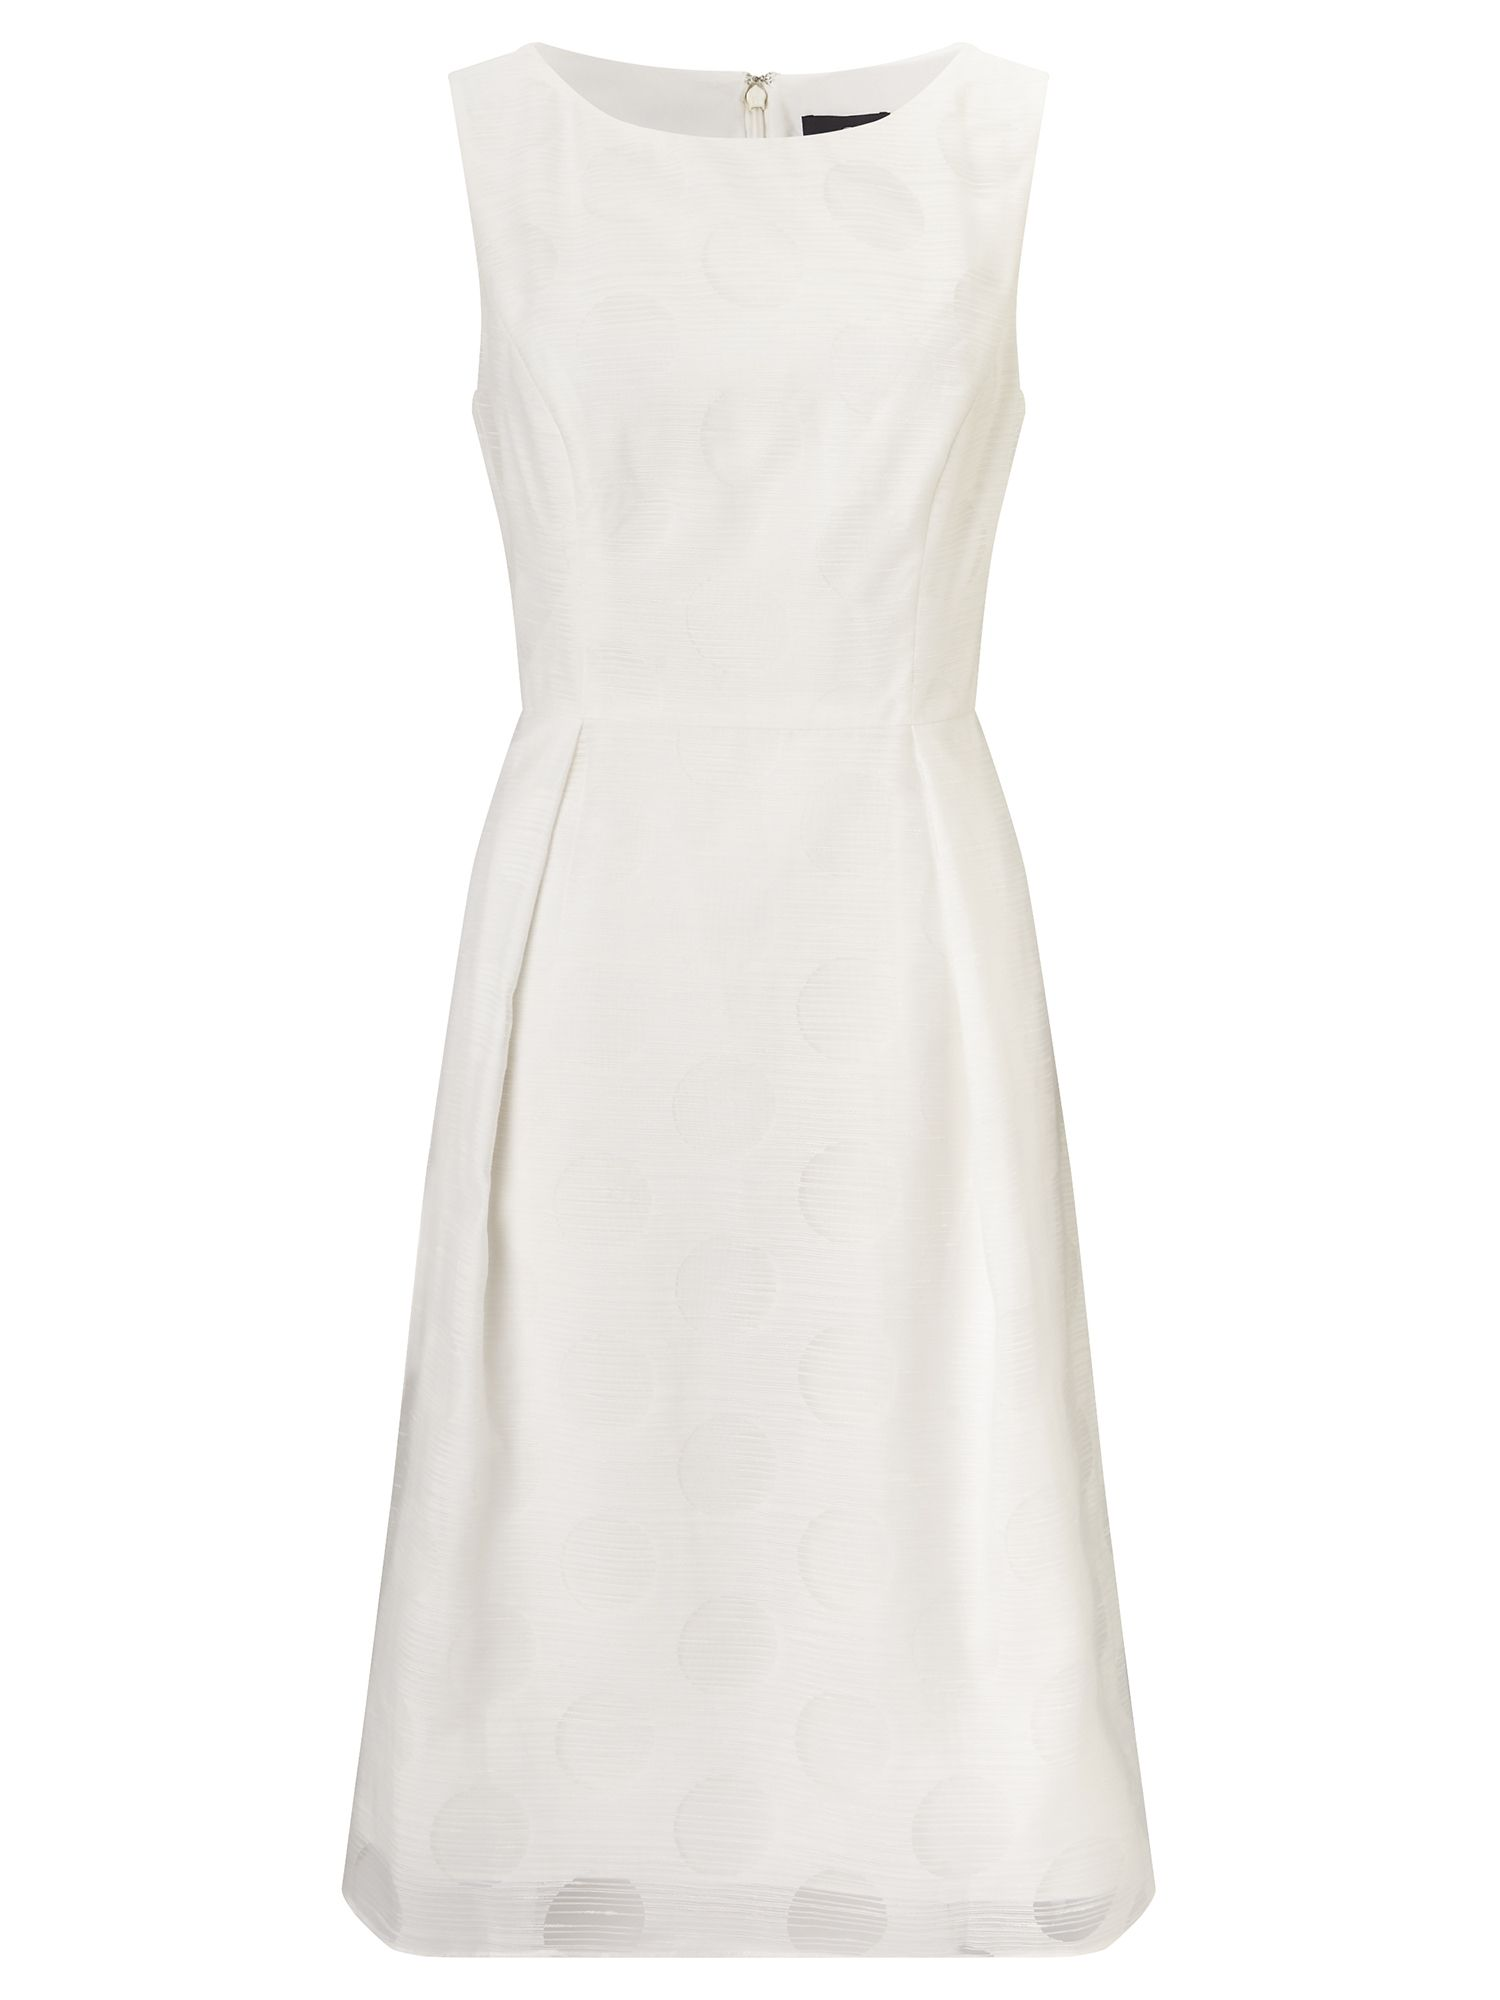 Adrianna Papell Fit and flare dress, White